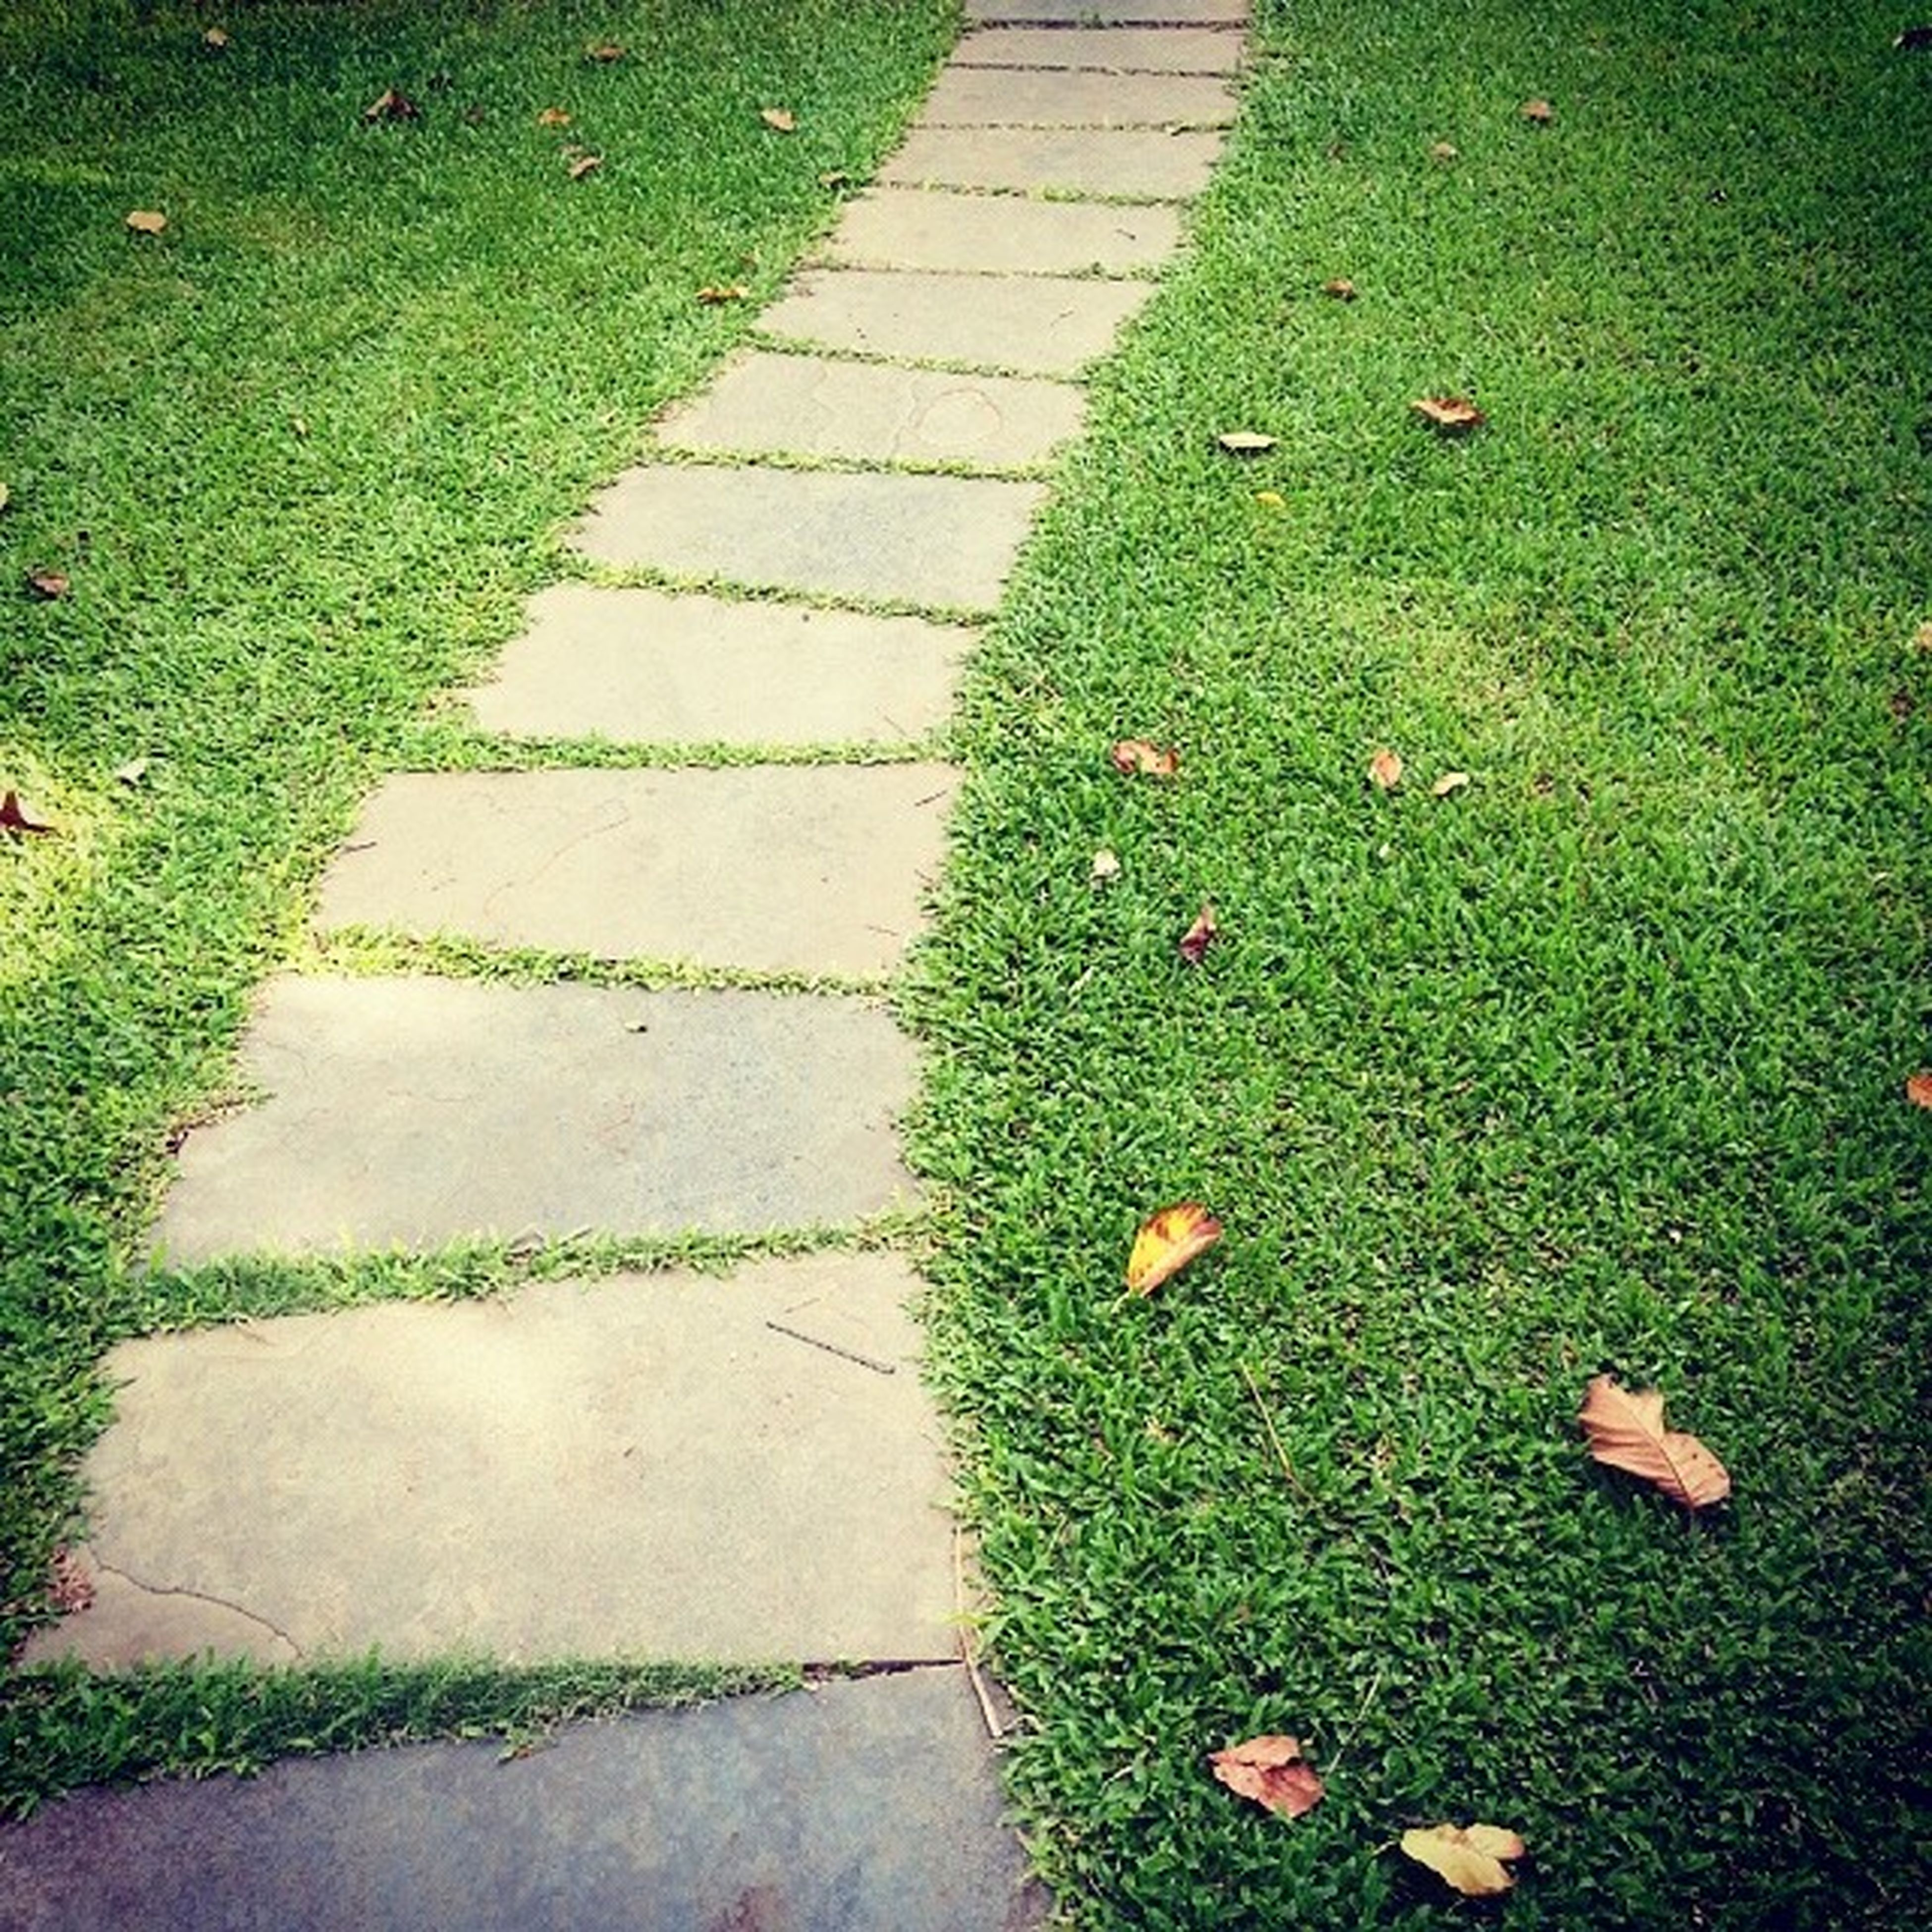 grass, high angle view, green color, grassy, field, footpath, growth, leaf, nature, plant, park - man made space, shadow, day, sunlight, outdoors, no people, lawn, street, paving stone, flower